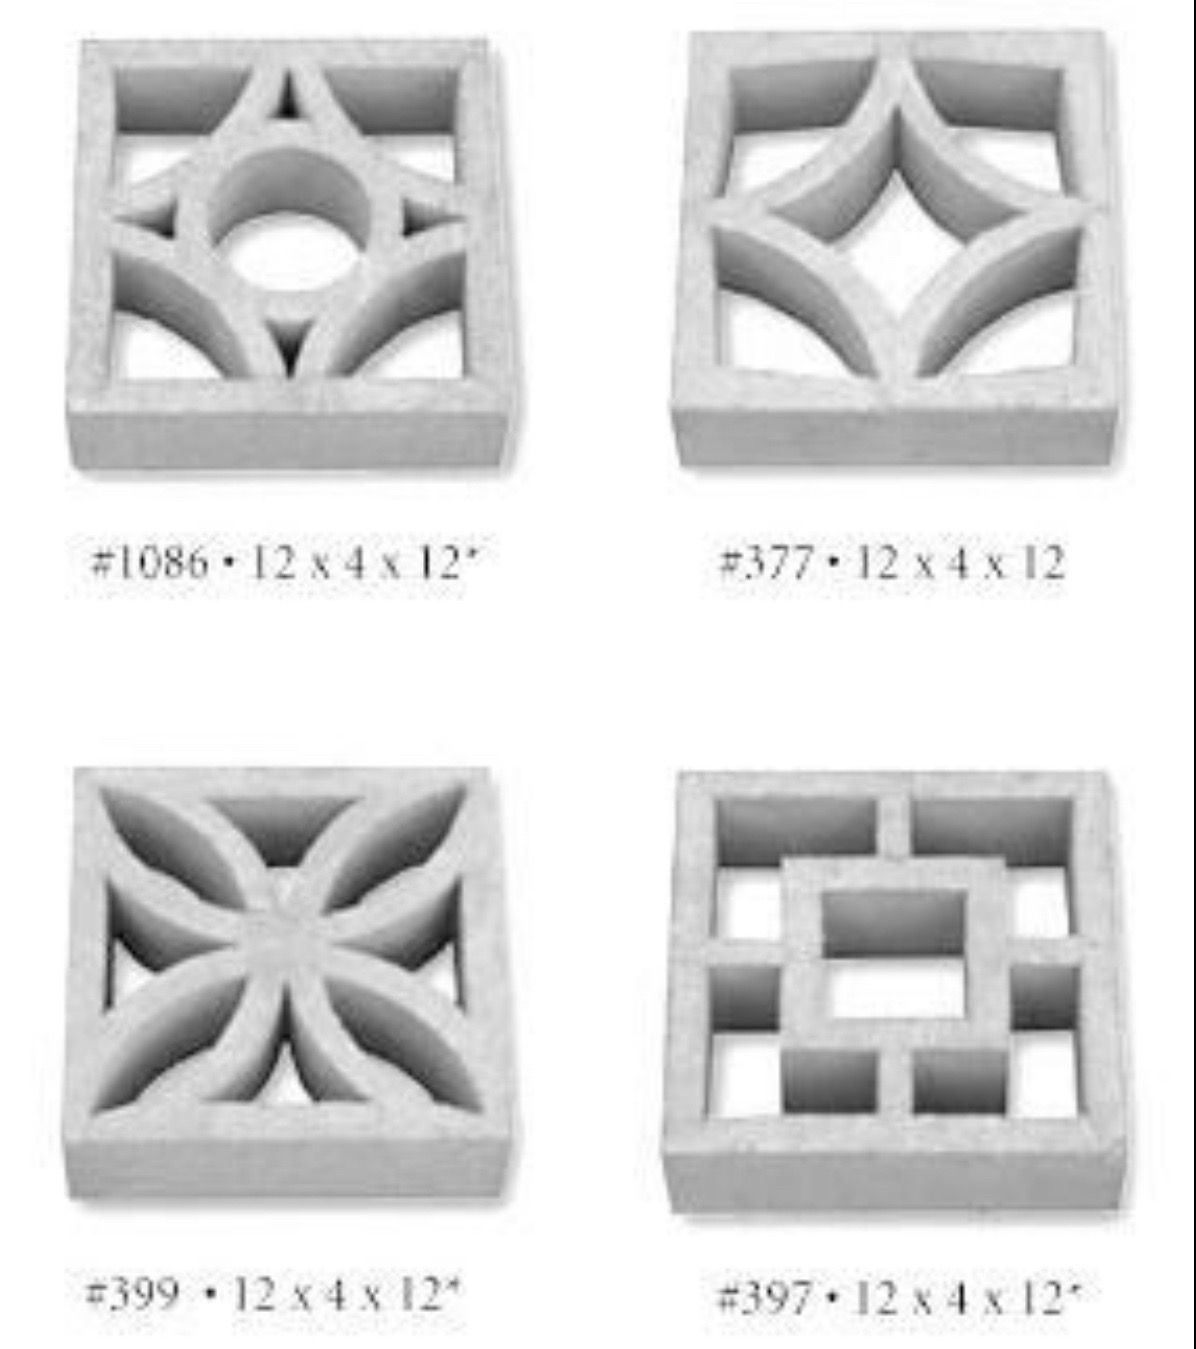 decorative masonry block.htm pin by r o o s t on roost retro  with images  concrete decor  concrete decor